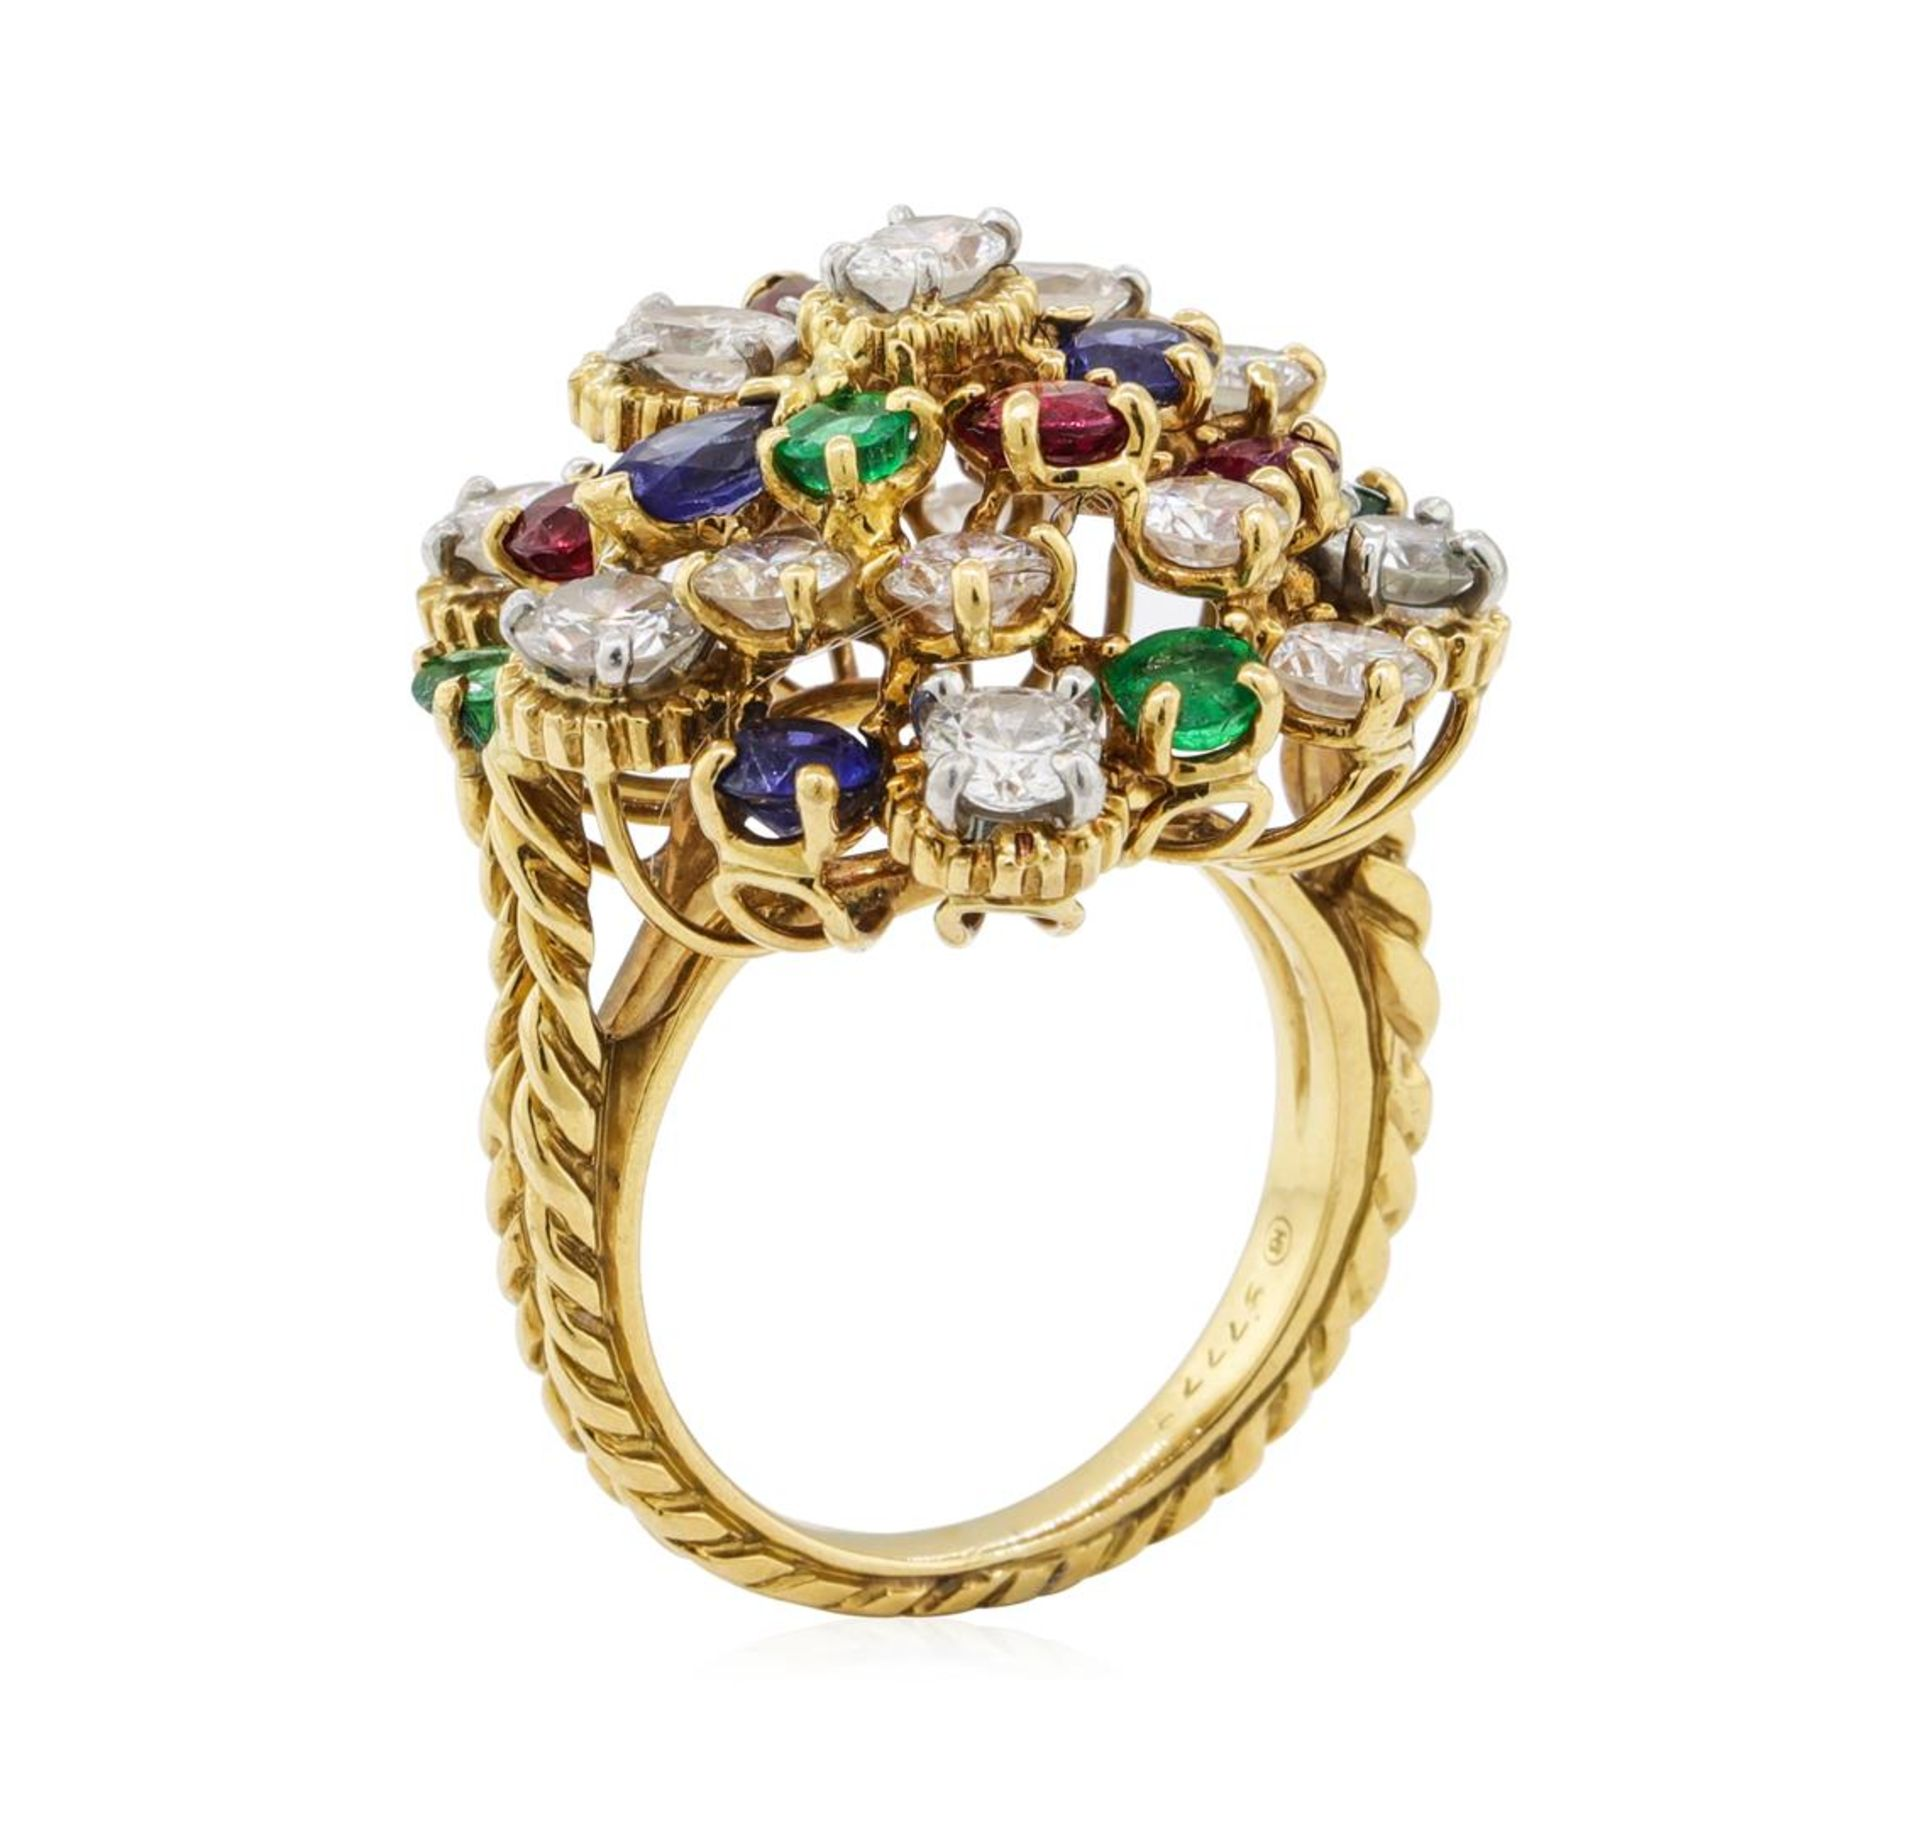 7.08 ctw Ruby, Emerald, Sapphire, and Diamond Ring - 18KT Yellow Gold and Platin - Image 4 of 6